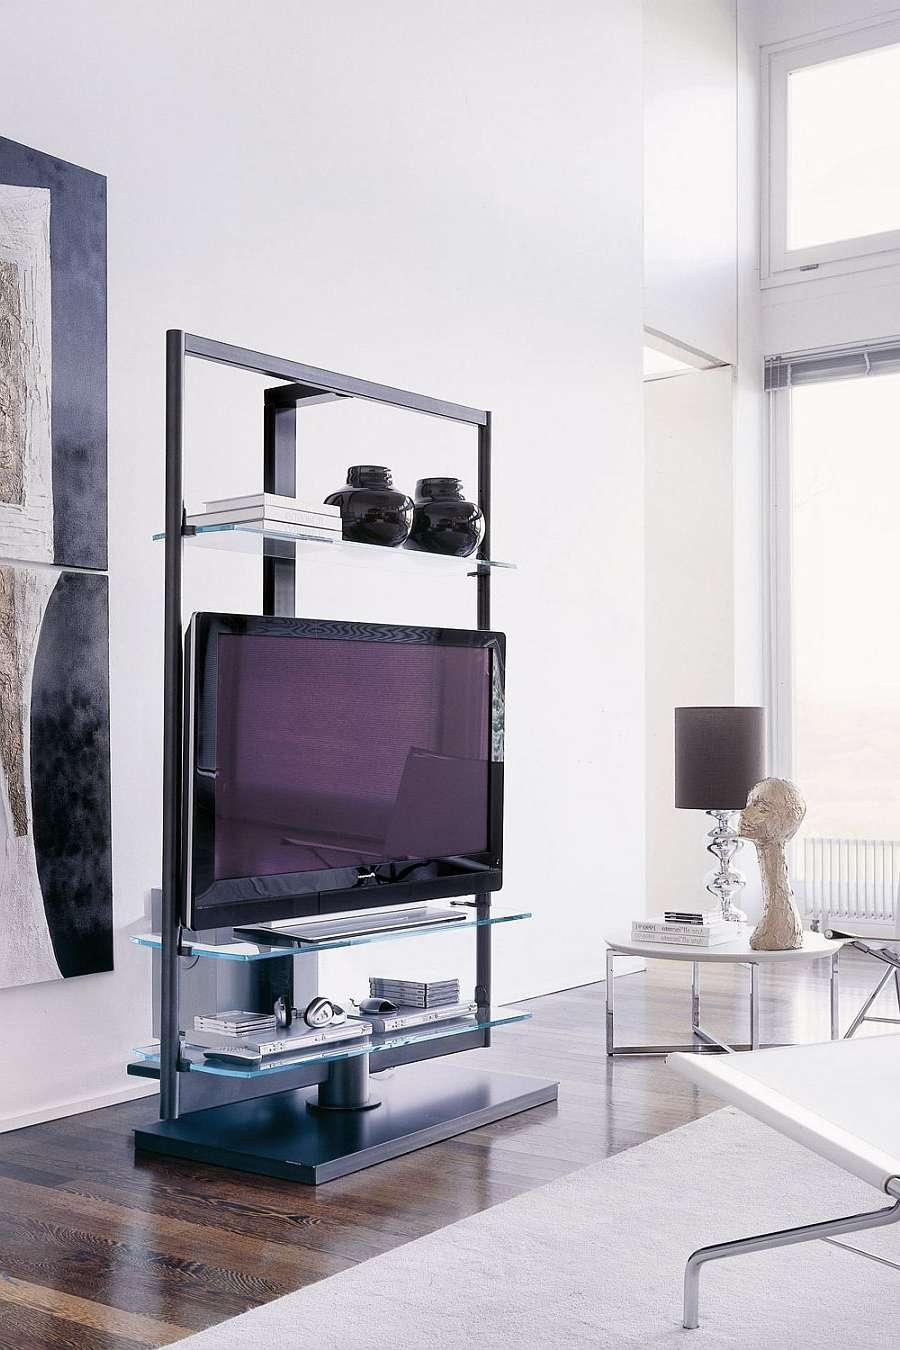 Captivating Tv Stand Small Space 47 On Small Home Remodel Ideas Intended For Tv Stands For Small Spaces (View 3 of 15)